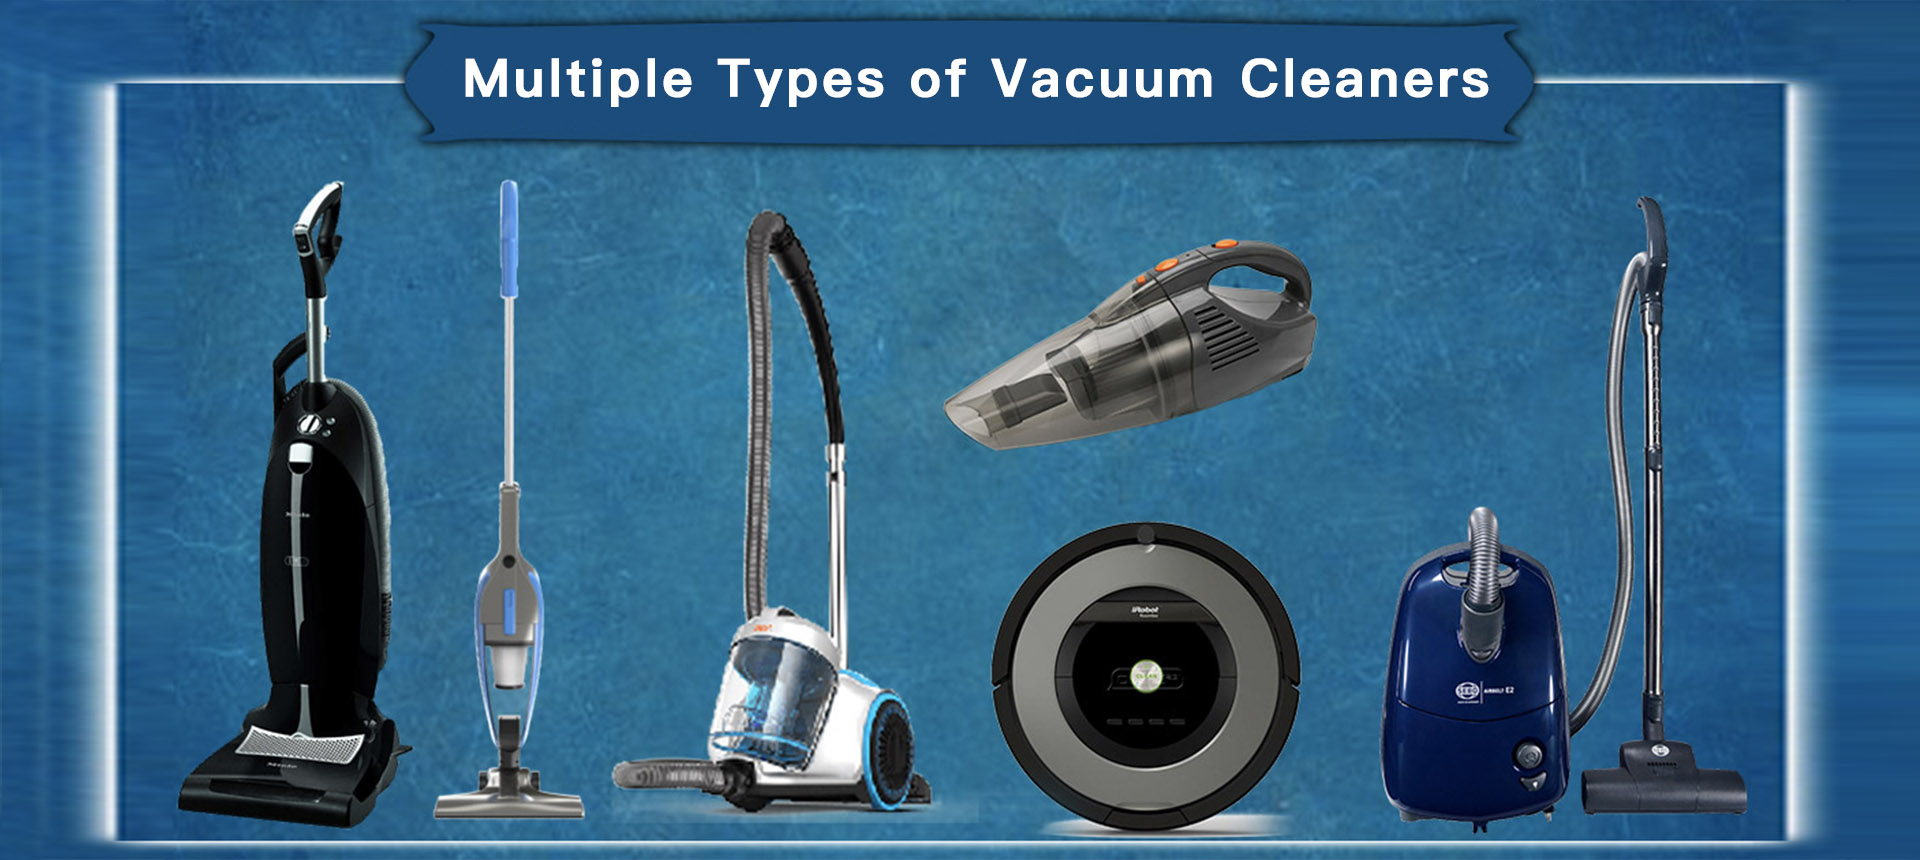 Multiple Types of Vacuum Cleaners